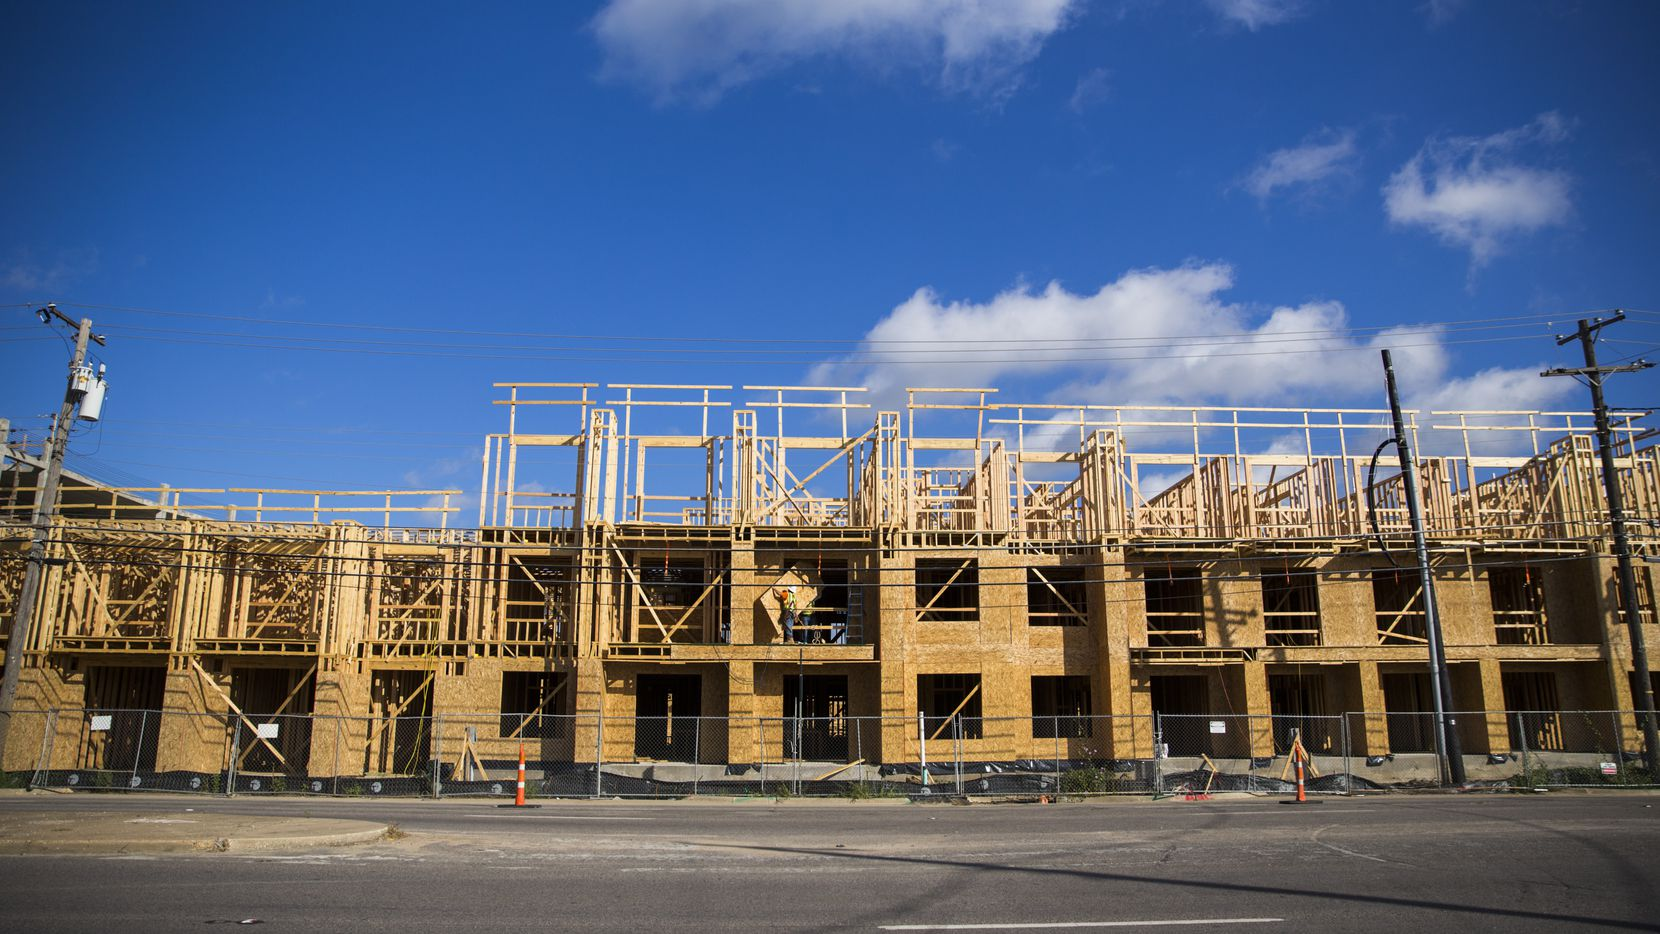 Apartment construction in North Texas has fallen to about 47,000 units after topping 50,000 early this year.